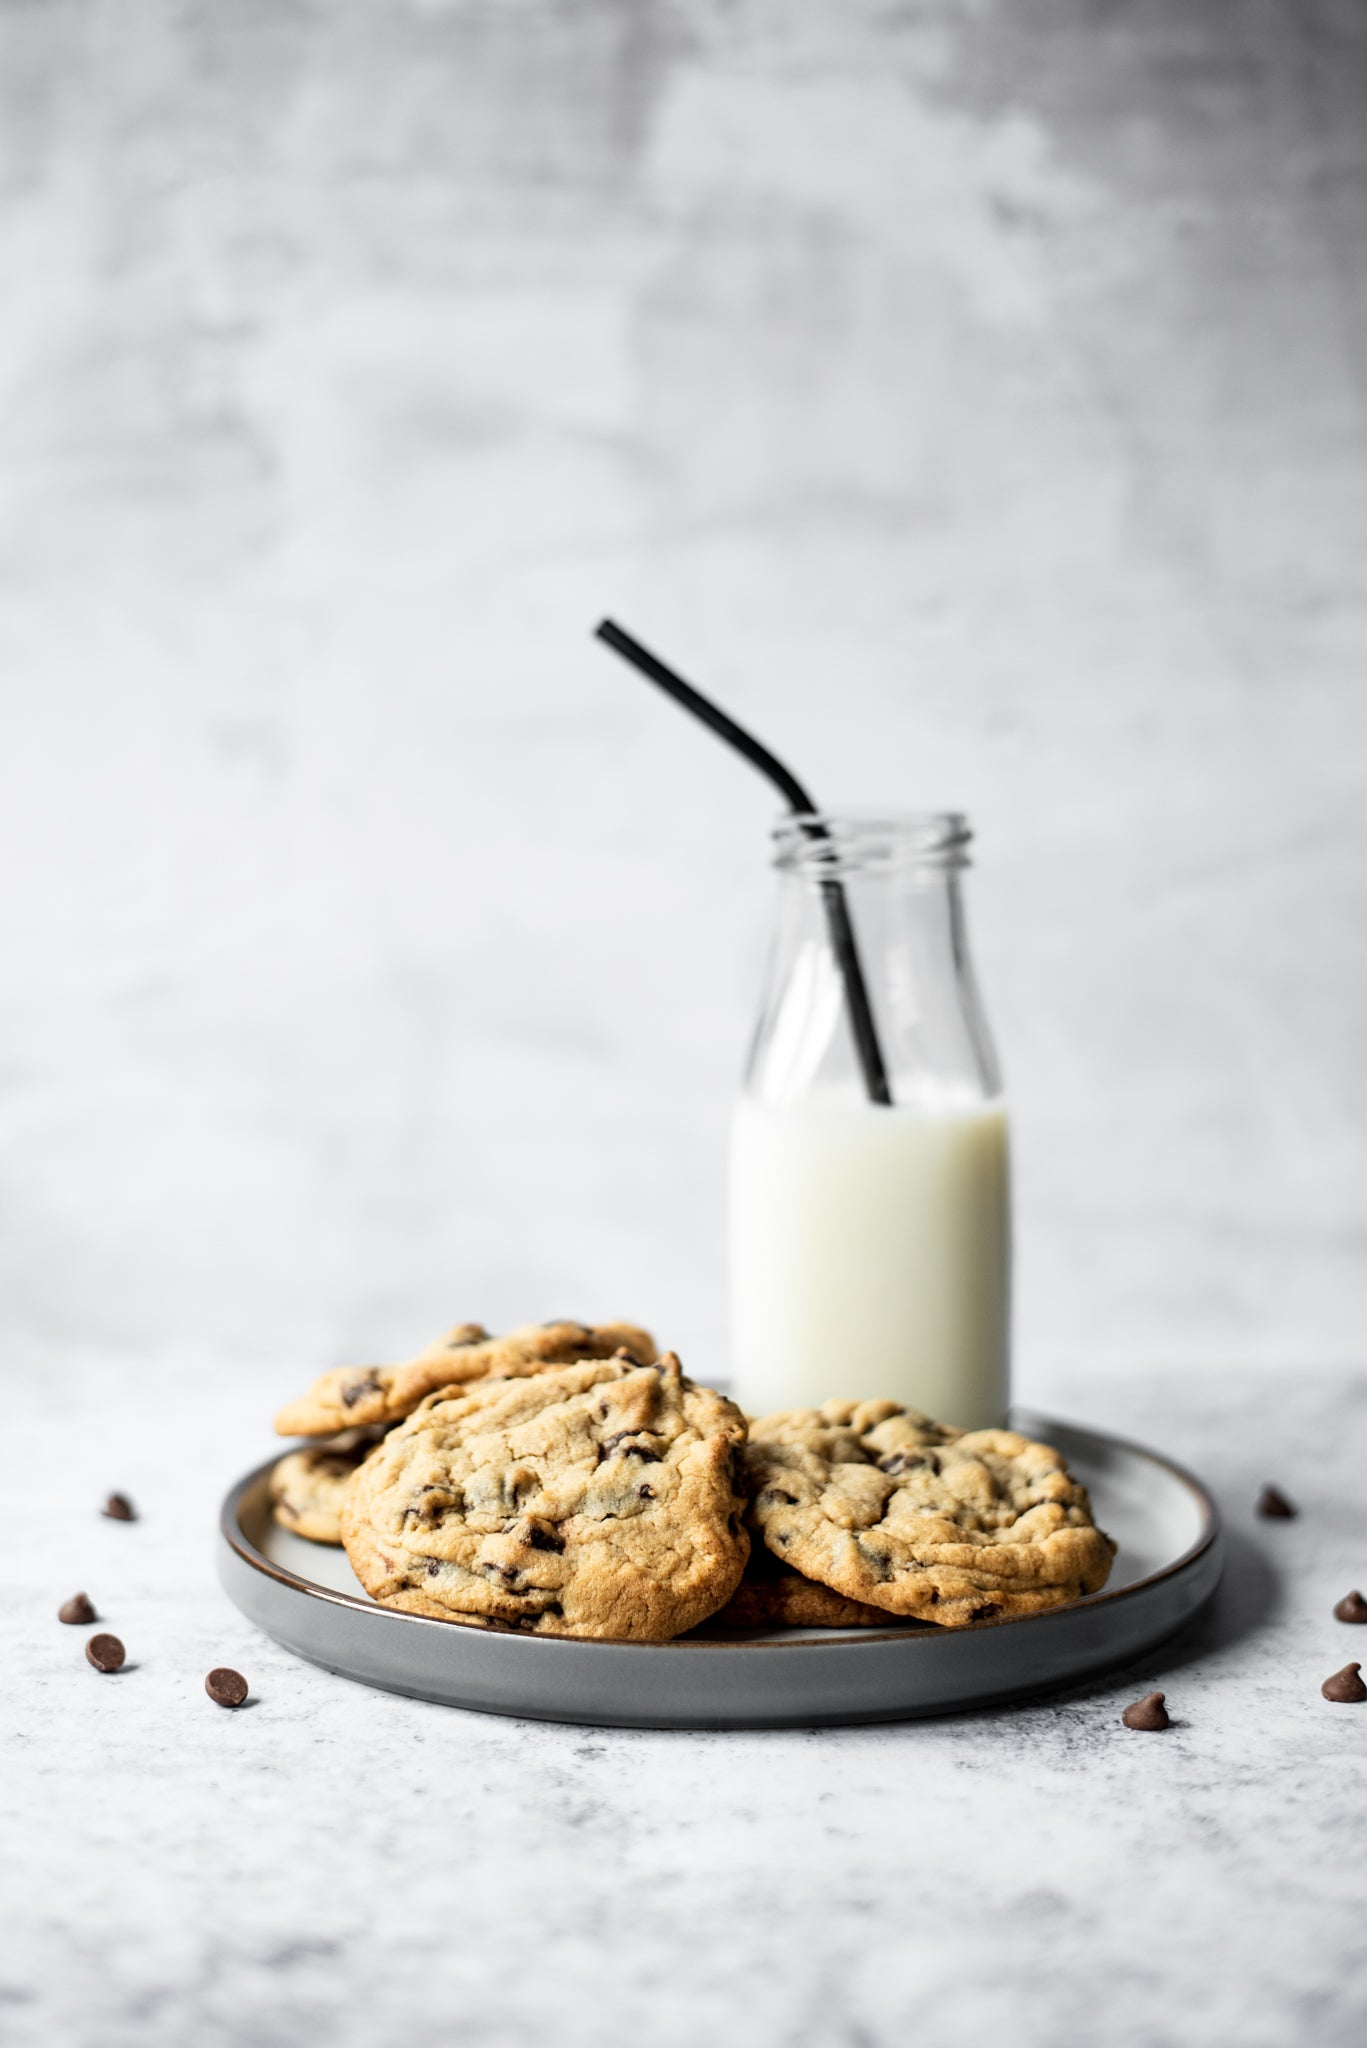 A plate of copycat millies cookies and a glass of milk in a bottle with a straw